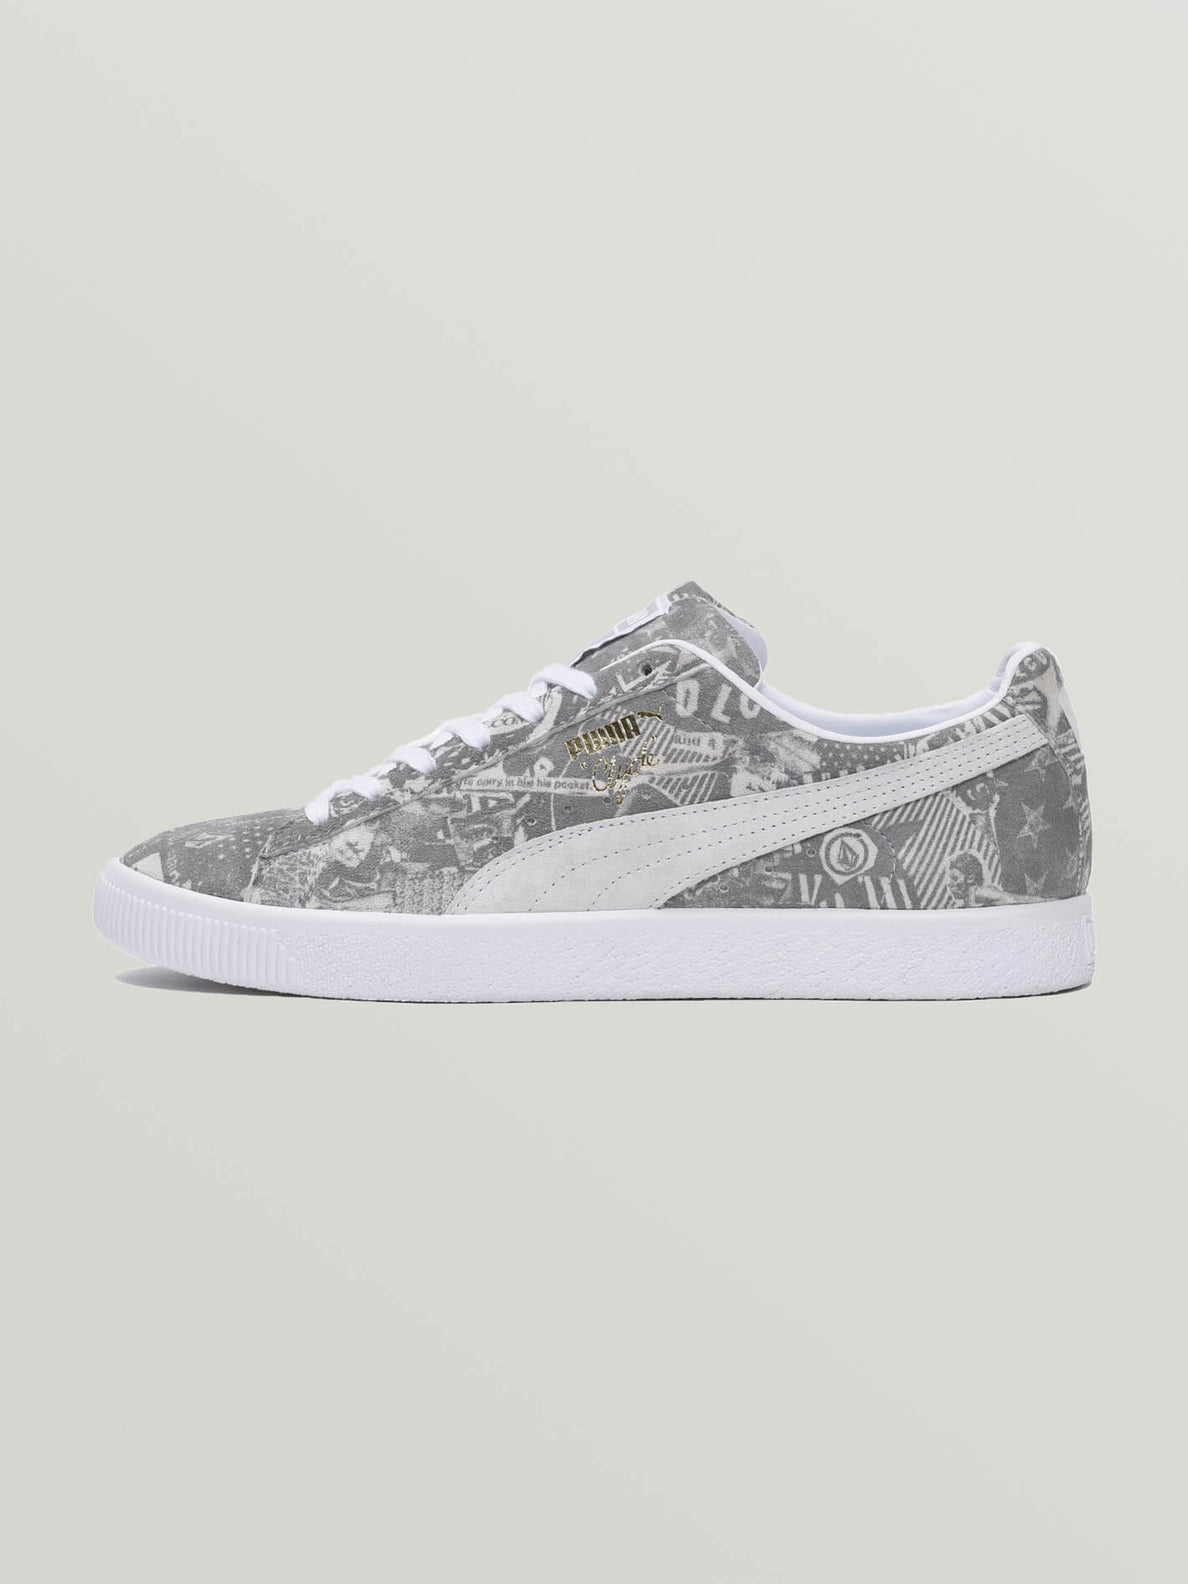 Puma Clyde X Volcom In White, Alternate View